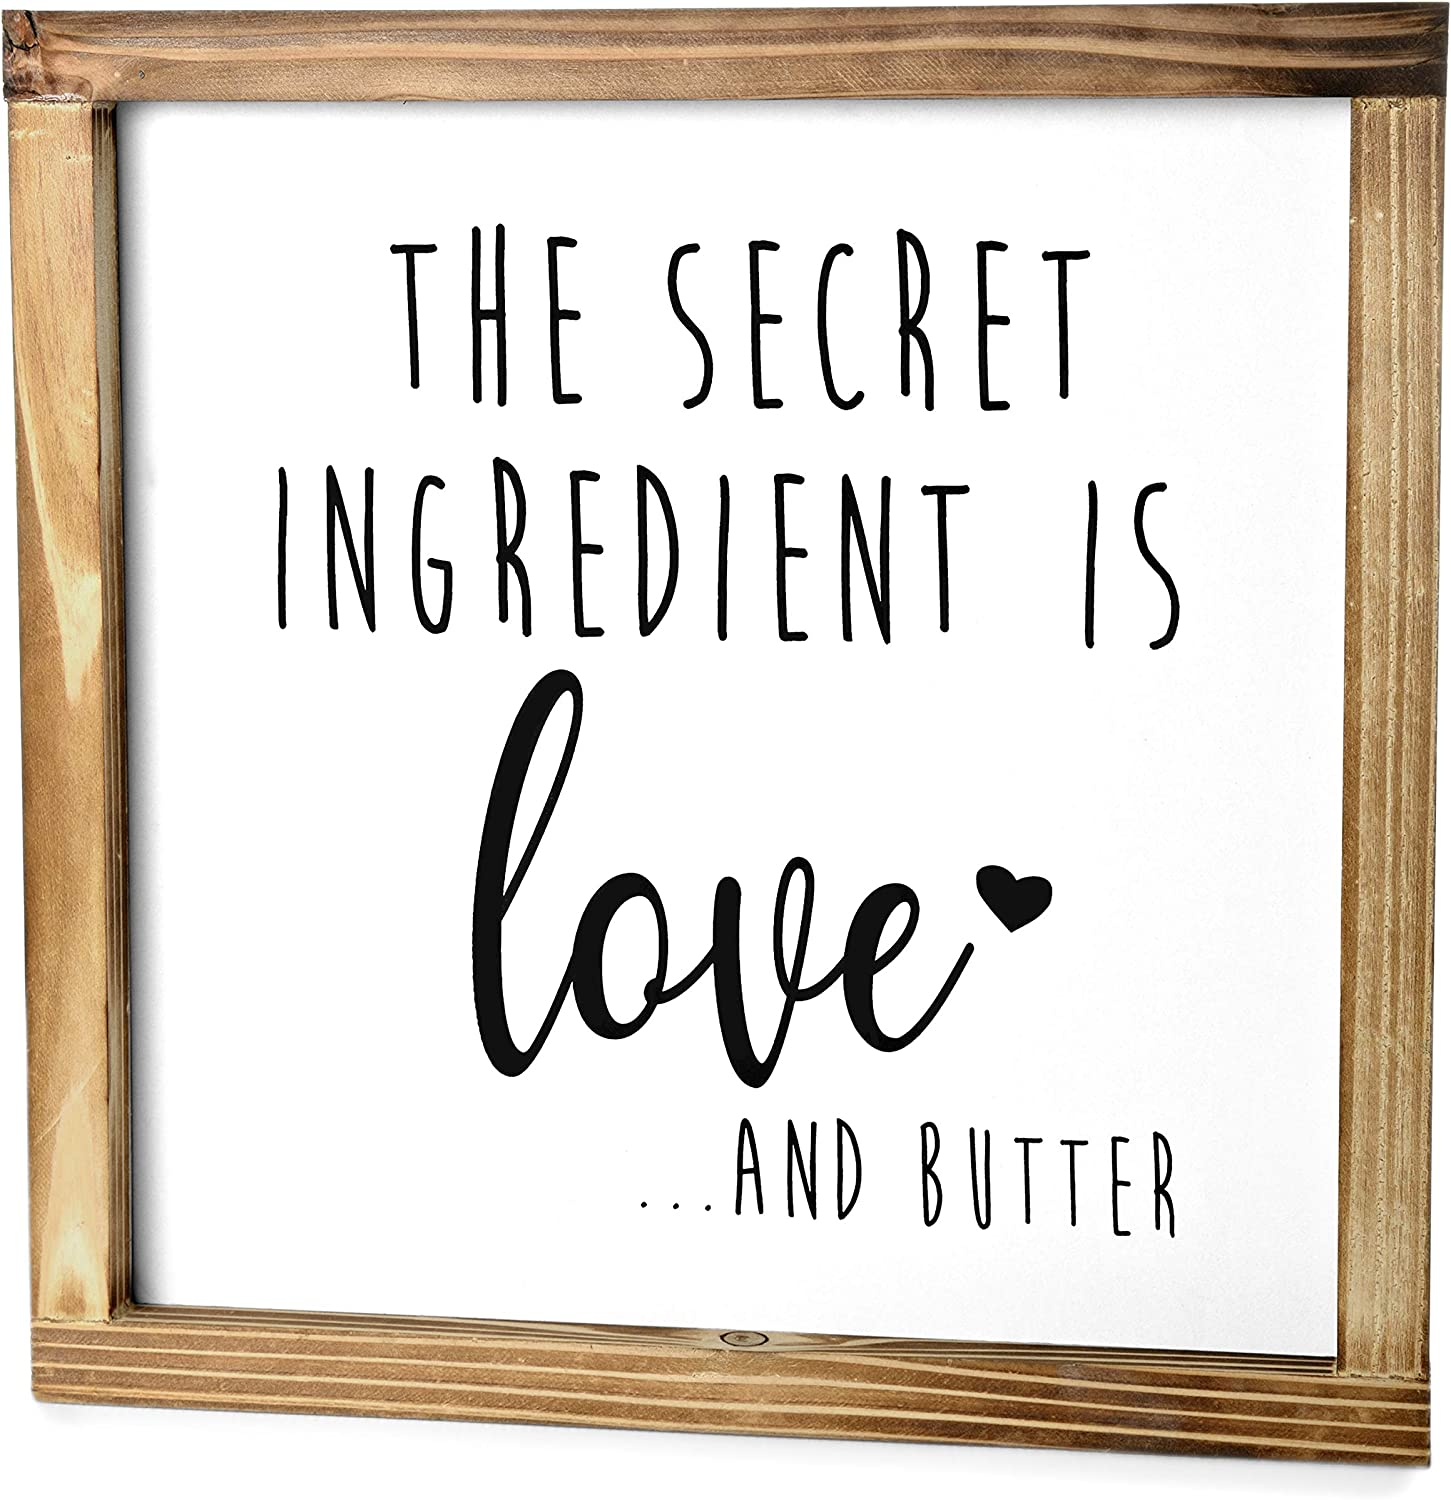 MAINEVENT The Secret Ingredient is Always Love and Butter Sign - Funny Kitchen Sign - Modern Farmhouse Kitchen Decor, Kitchen Wall Decor, Country Kitchen Decor with Solid Wood Frame 12x12 Inch